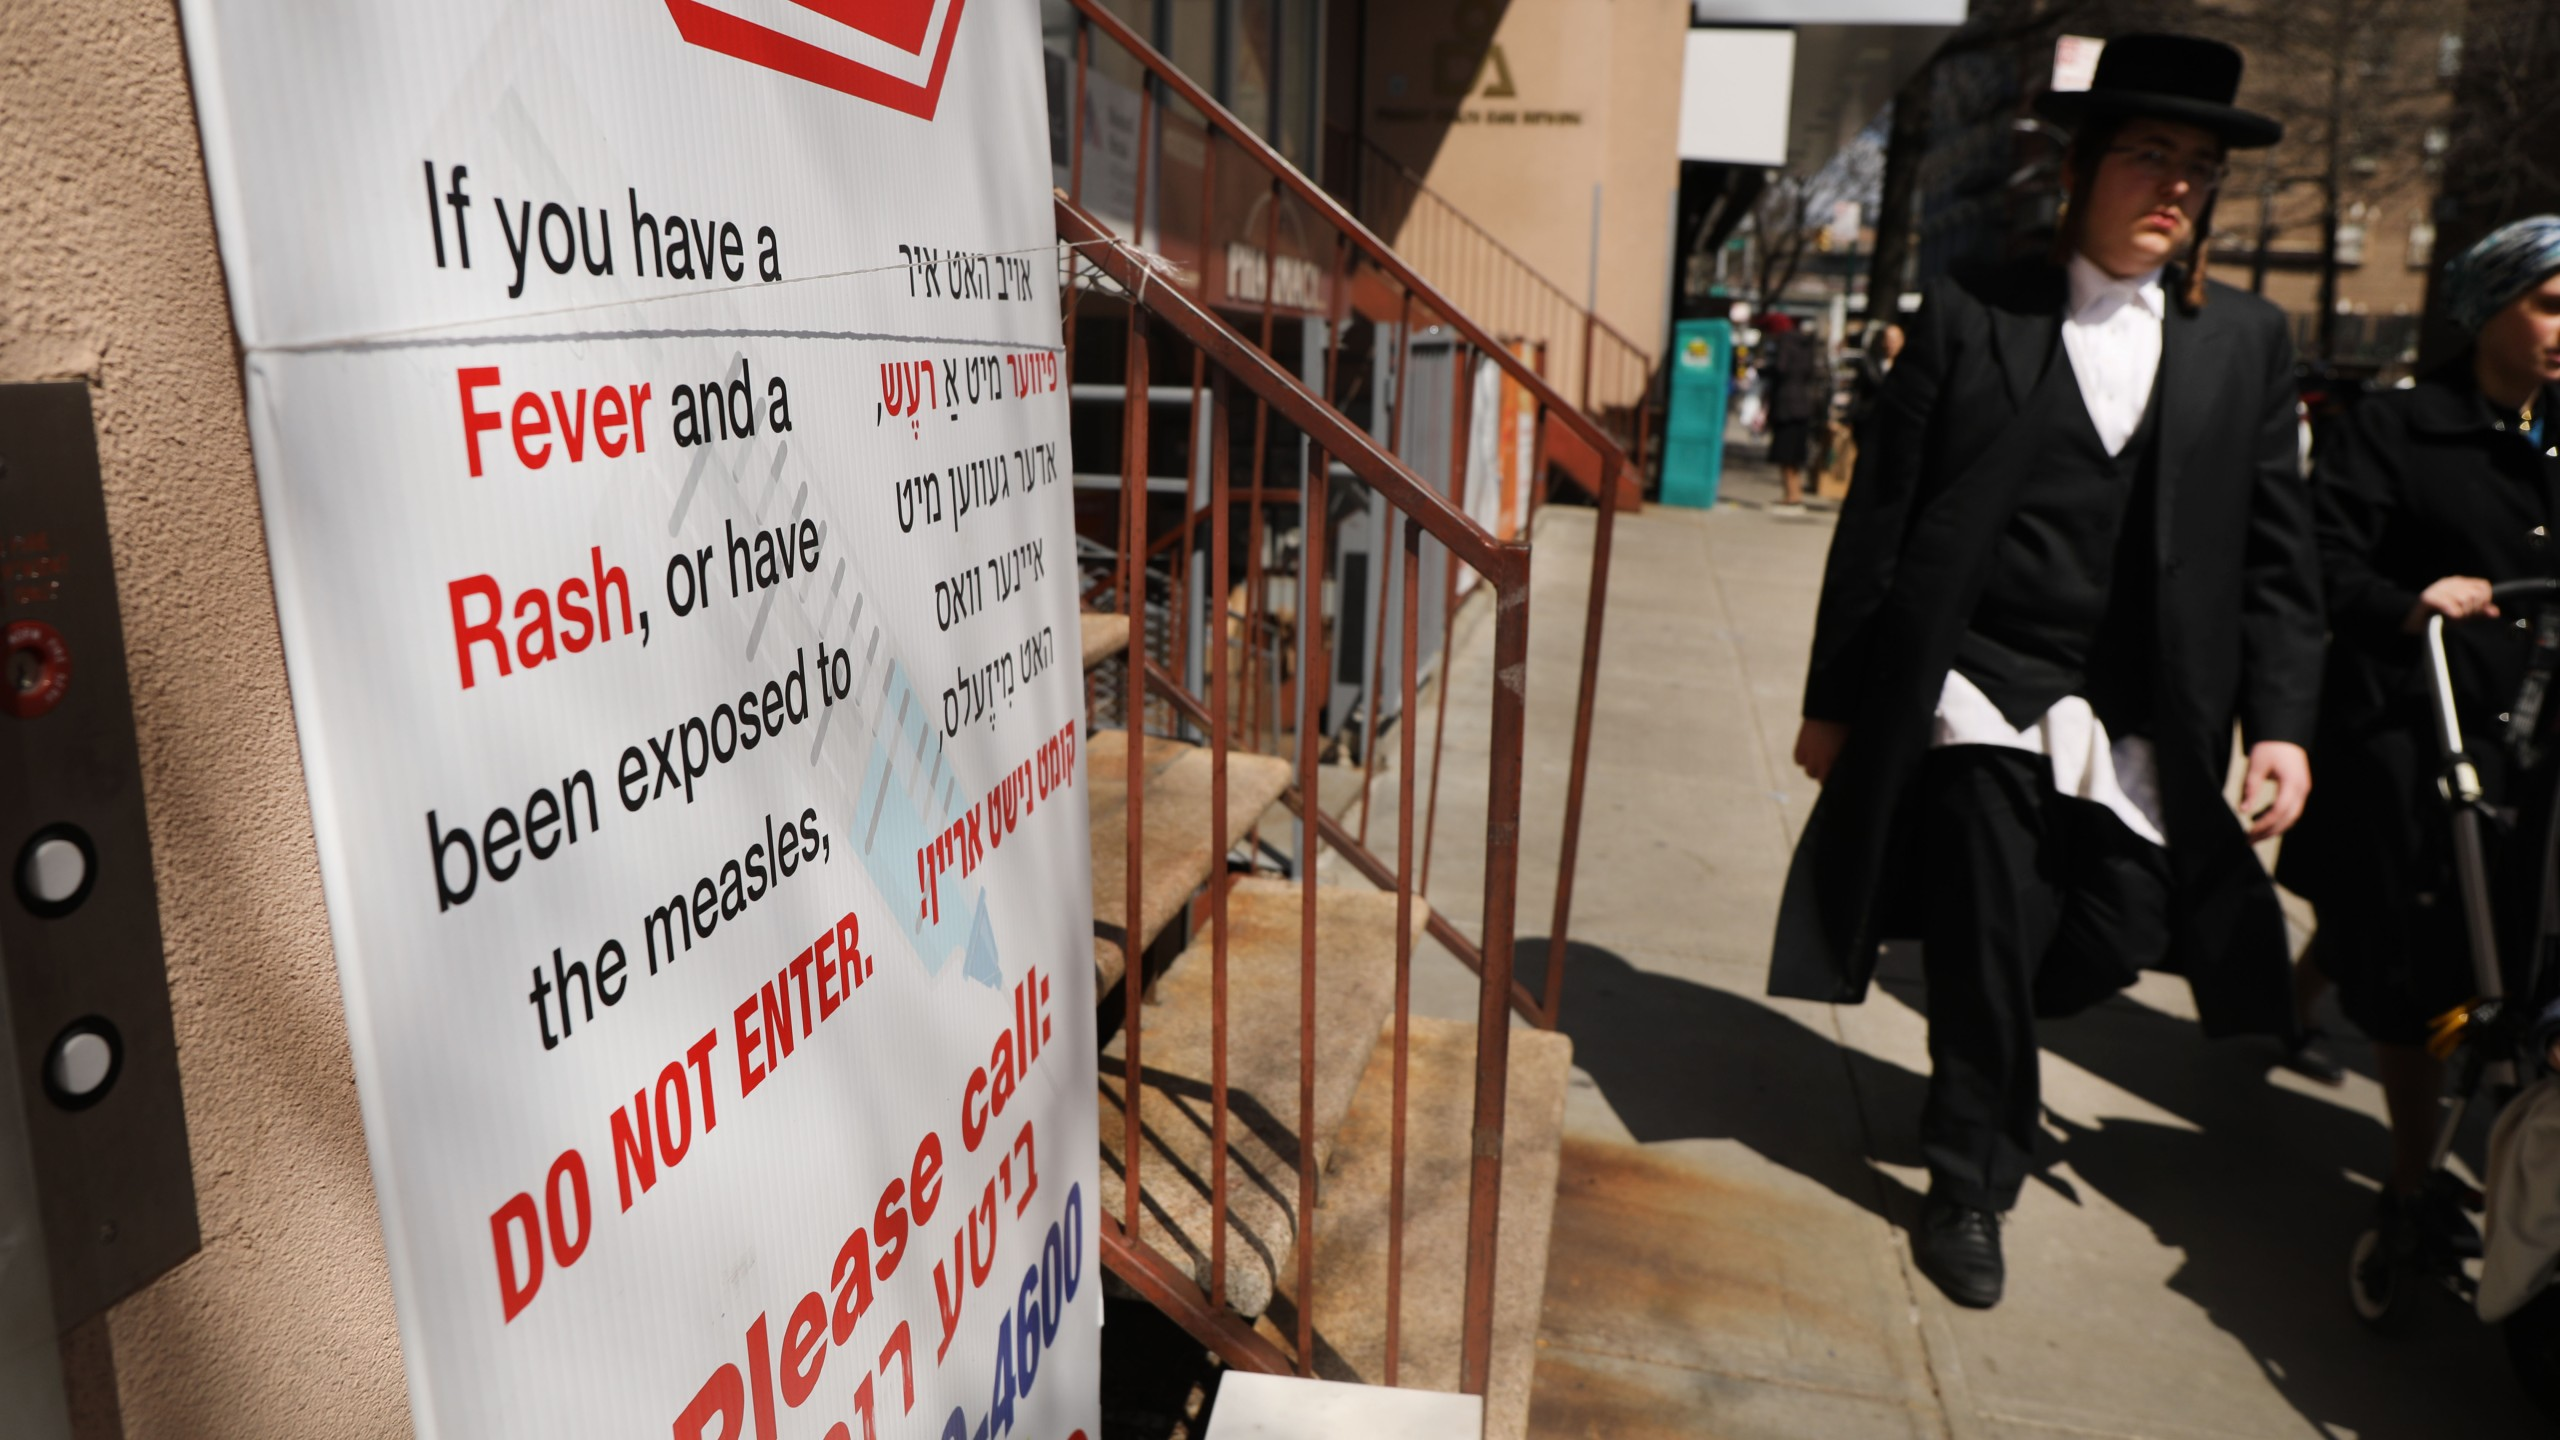 A sign warns people of measles in the ultra-Orthodox Jewish community in Williamsburg on April 10, 2019 in New York City. (Credit: Spencer Platt/Getty Images)